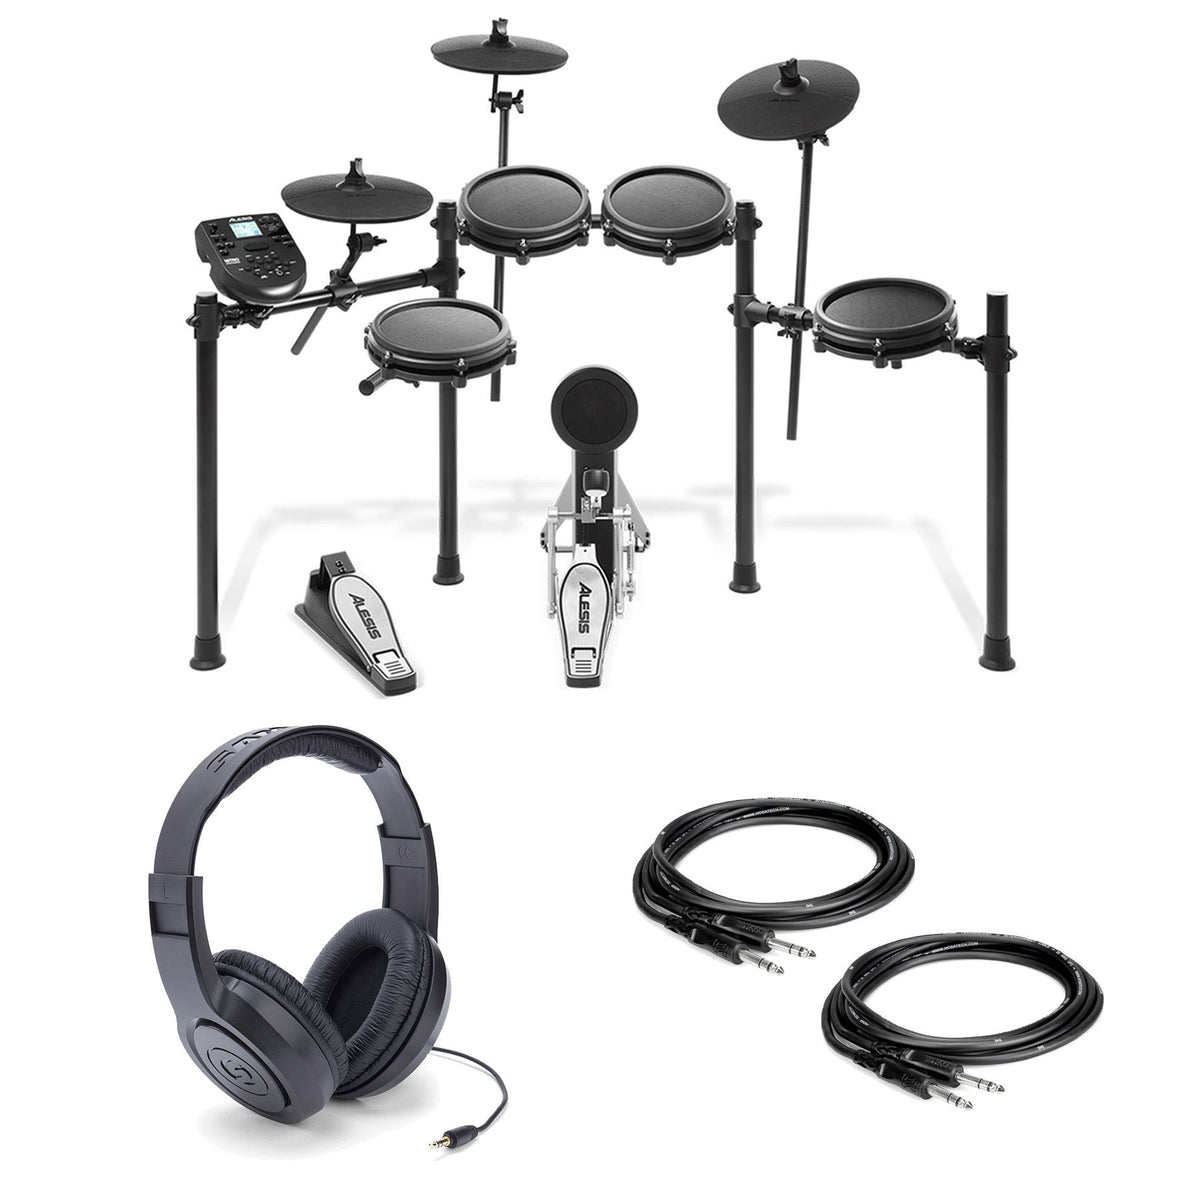 Alesis Nitro Mesh Kit w/ Samson SR350 Headphones and 2 Hosa TRS Cables Bundle